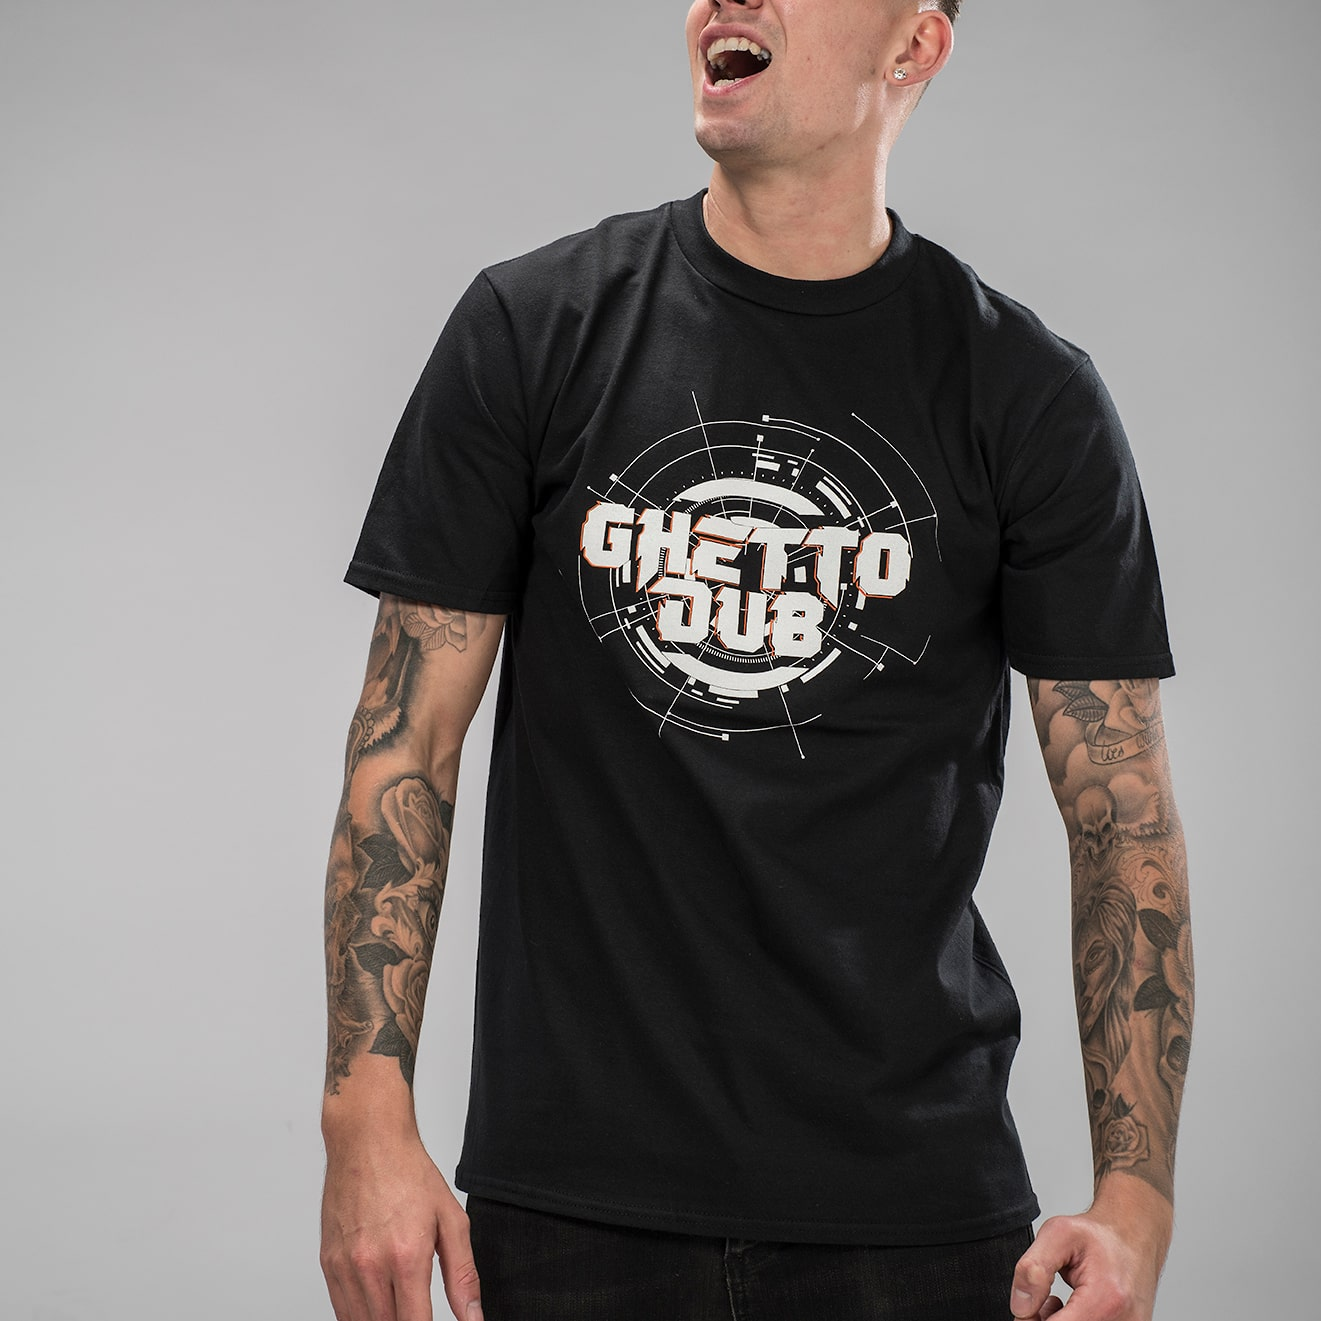 Ghetto Dub Black Tee